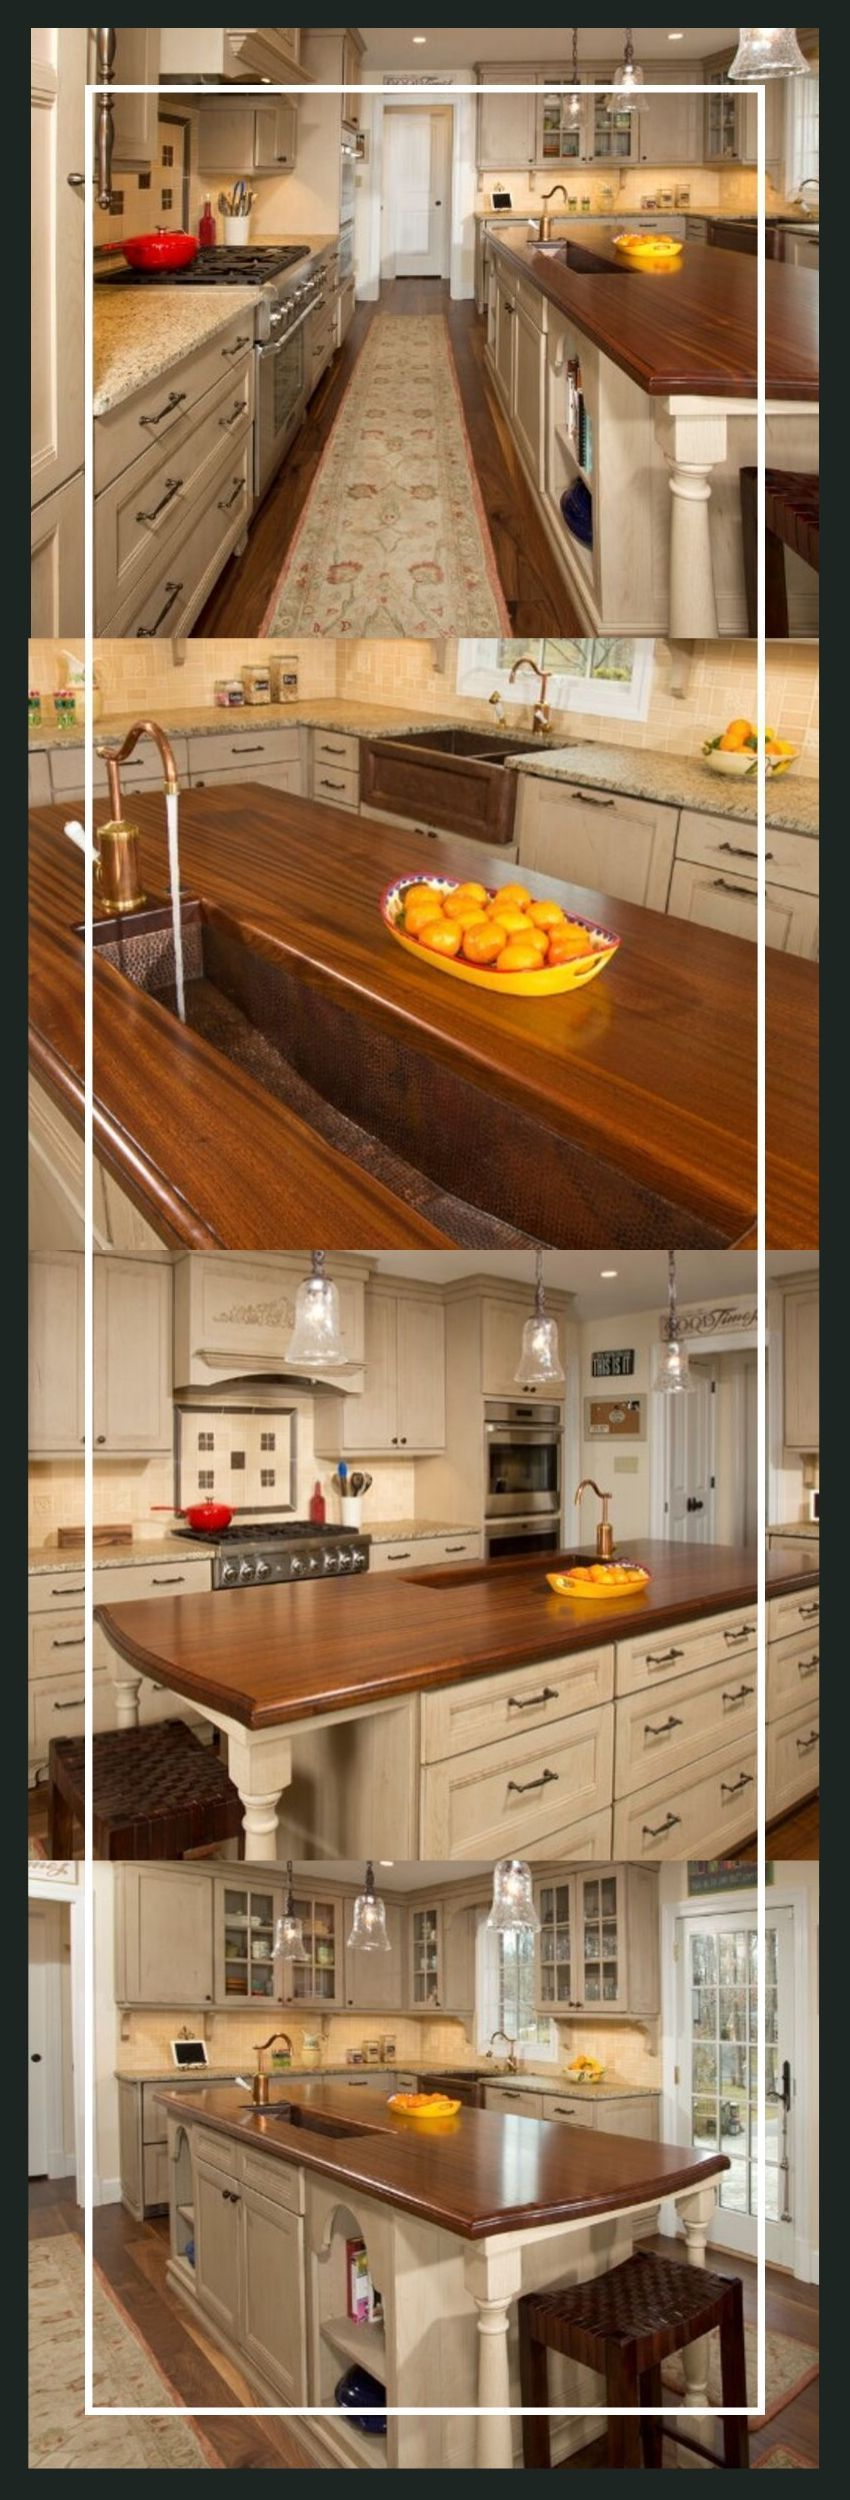 Galley Kitchen Design (Small, Unique, Modern Galley Kitchen Ideas)  Domestic galley kitchen design permits plenty of woodwork to be put into a part of the kitchen, you can have a door or walkways at the finish of the run. galley kitchen design   galley kitchen design floor plans   galley kitchen design layout   galley kitchen design ideas   galley kitchen design layout floor plans   Galley Kitchen Design   #opengalleykitchen Galley Kitchen Design (Small, Unique, Modern Galley Kitchen Ideas)  Dom #opengalleykitchen